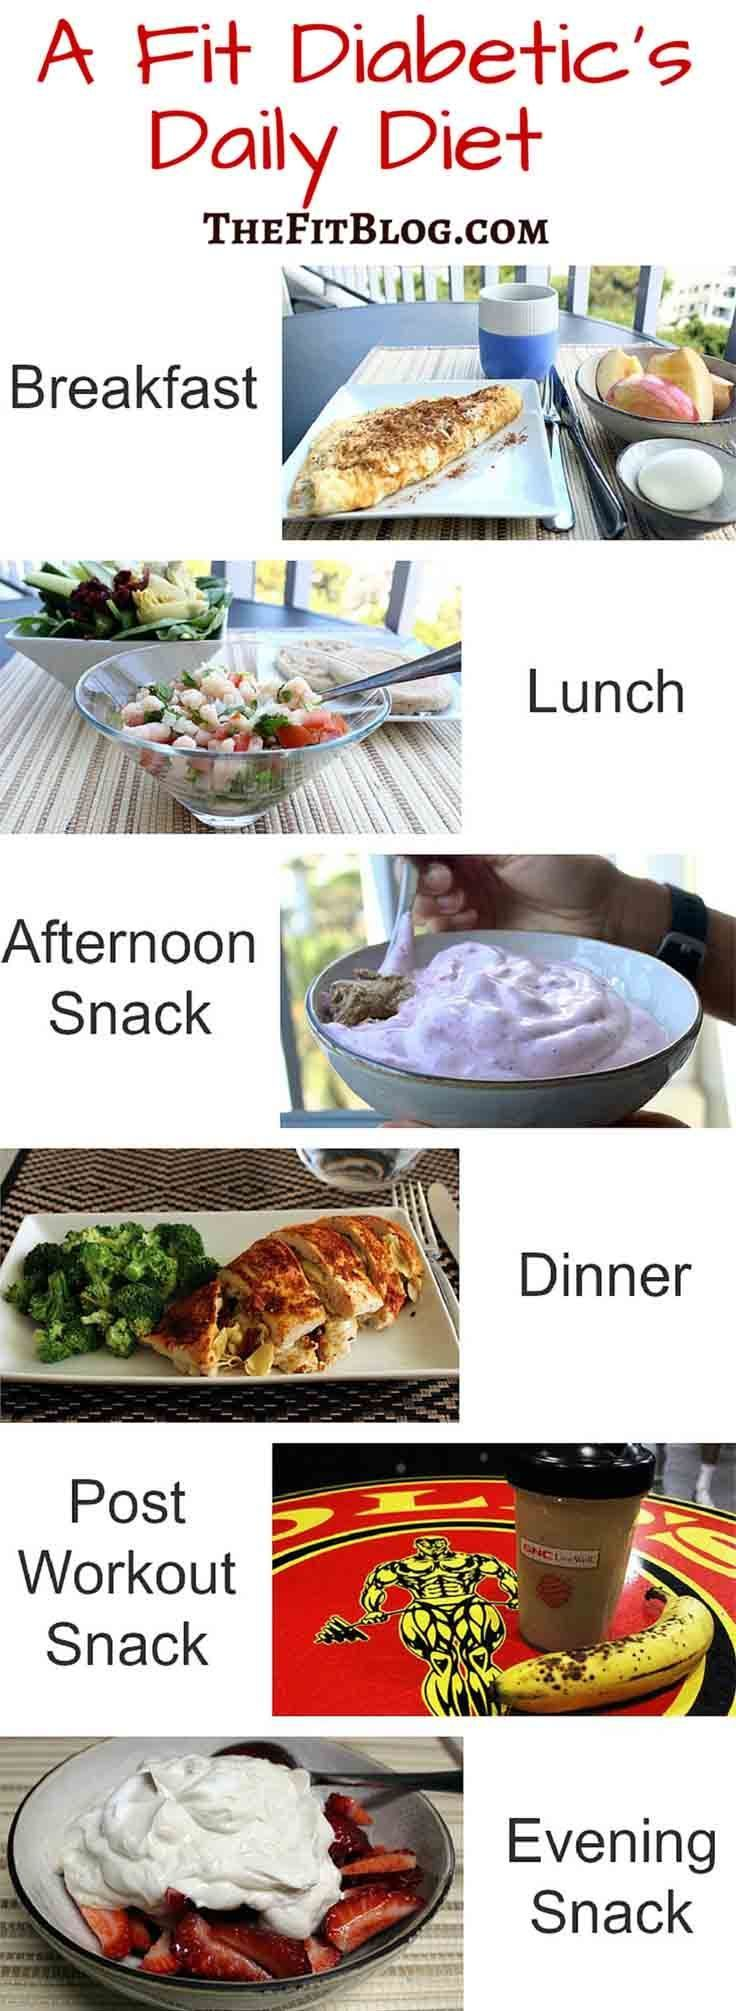 My Fit Diabetic Meal Plan – This is an actual day's meals and very typical for how I eat. It's about 1,500-1,600 calories, consisting of 135 g carbs, 175 g protein and 35 g fat. Perfect for a diabetic and fitness nut like me 